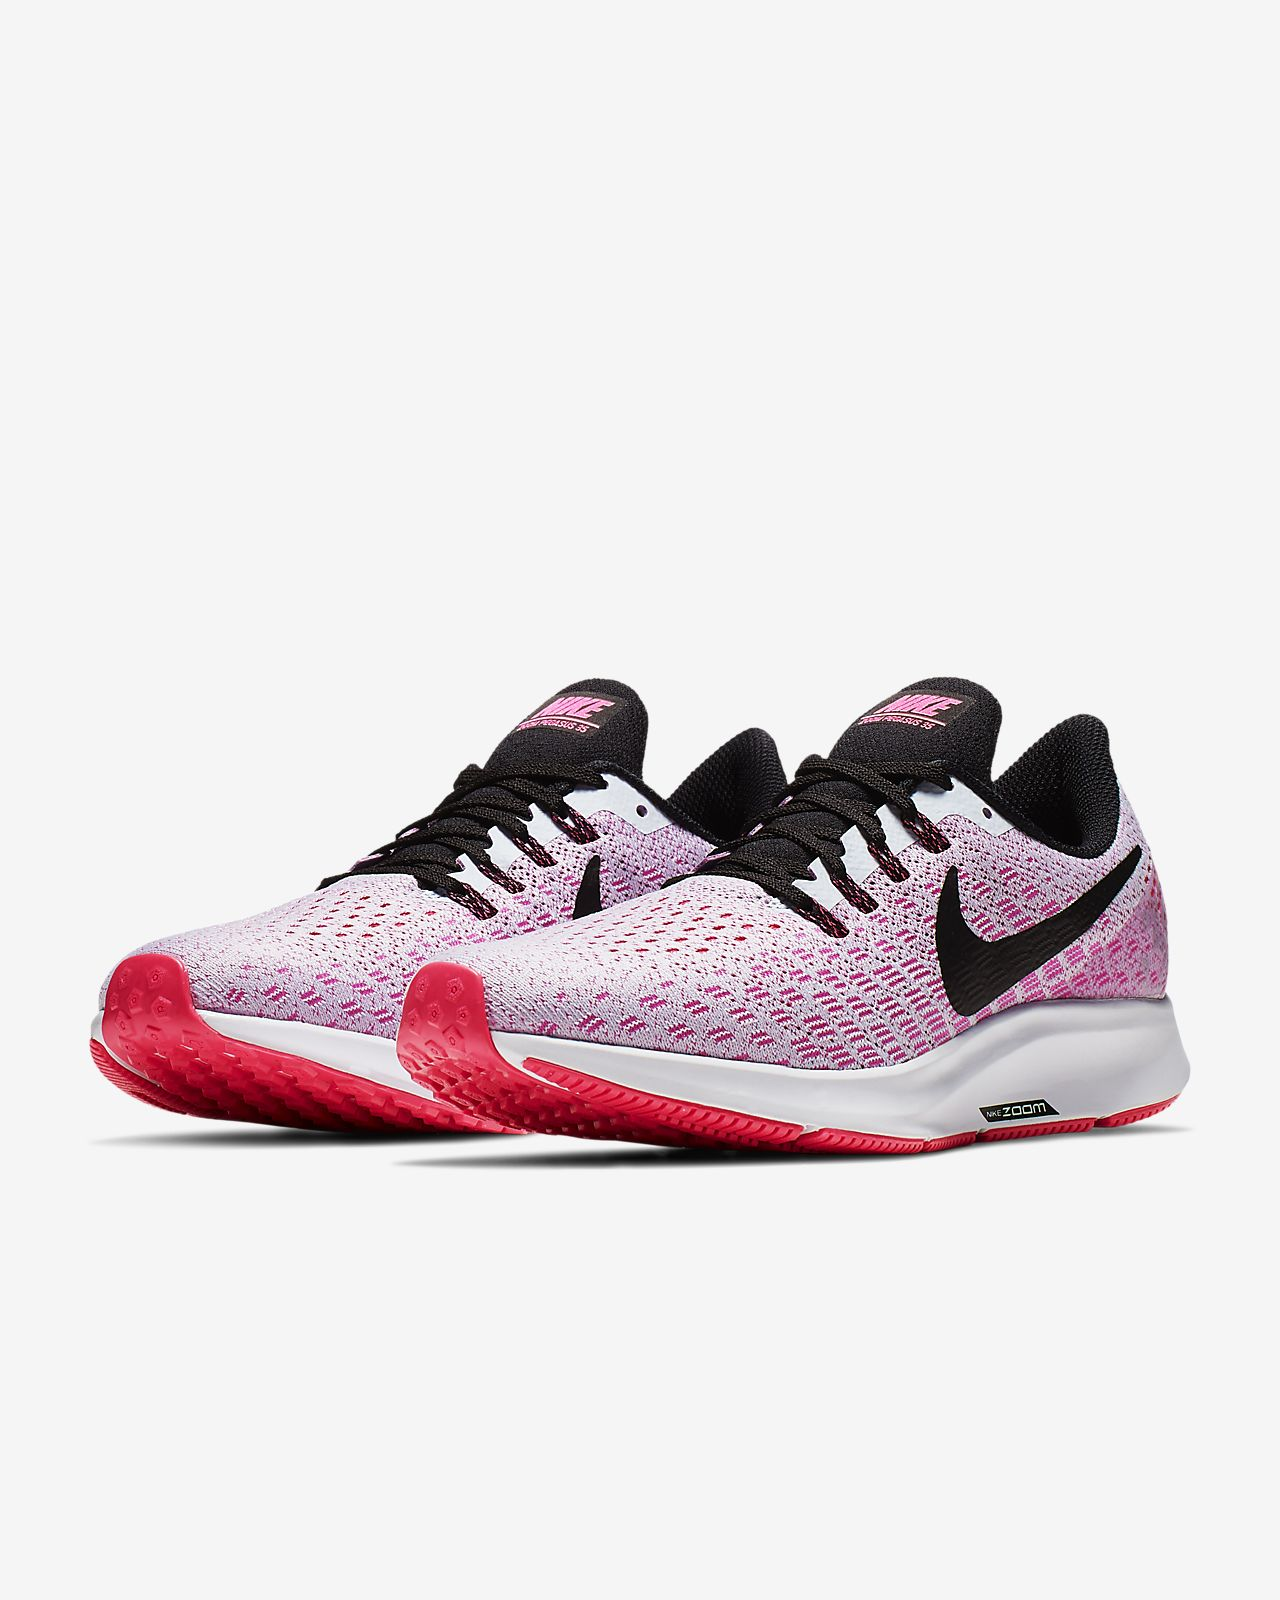 2244659f7b6d Low Resolution Nike Air Zoom Pegasus 35 Women s Running Shoe Nike Air Zoom  Pegasus 35 Women s Running Shoe